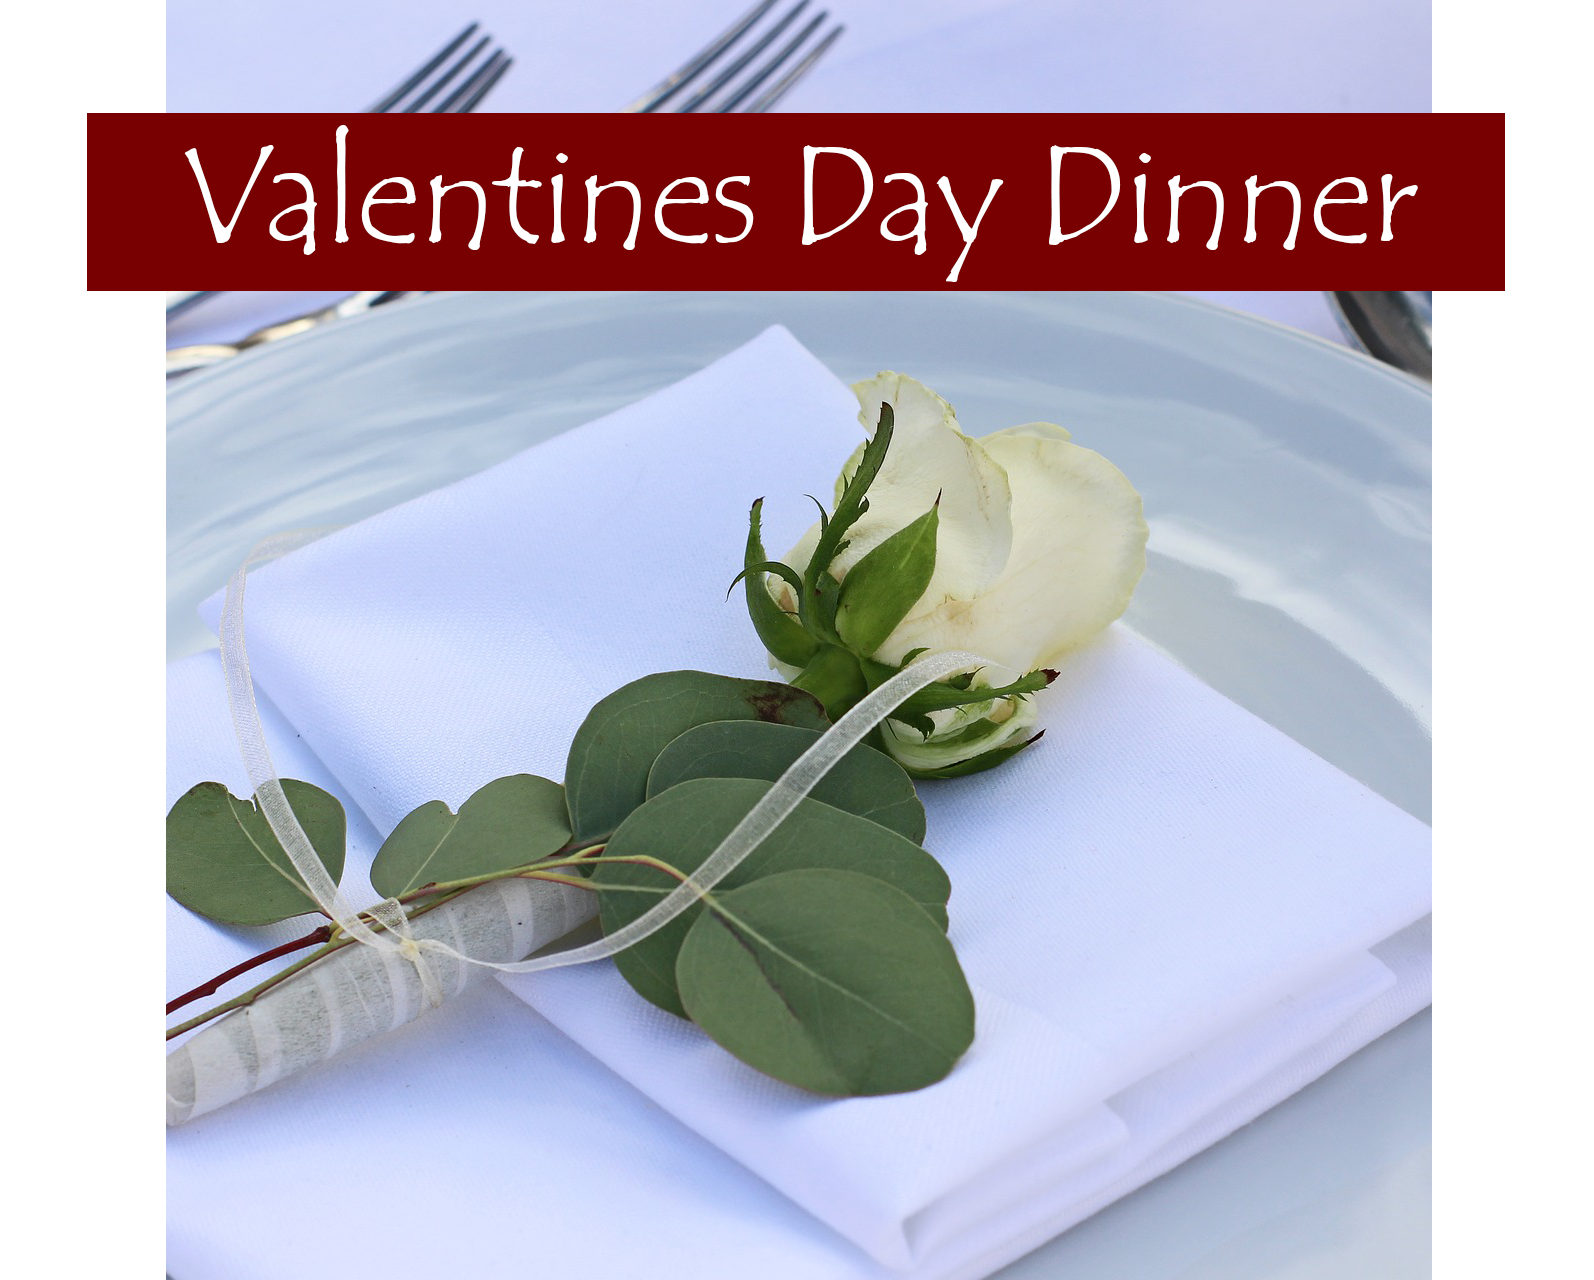 Valentines Day Dinner.png